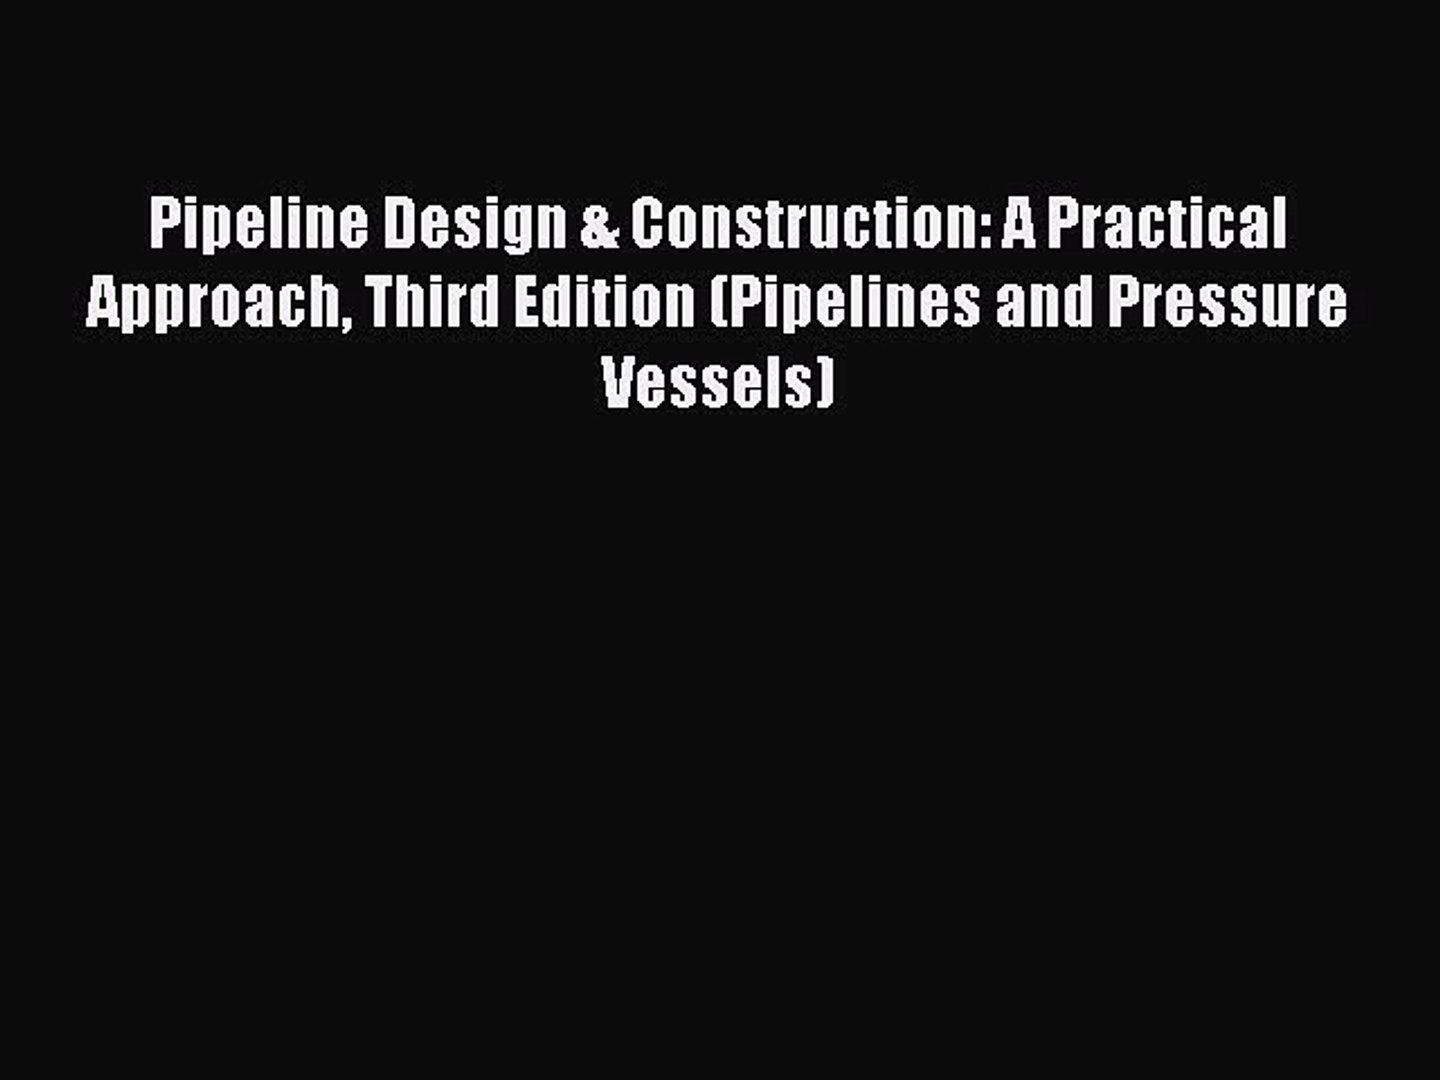 [Read] Pipeline Design & Construction: A Practical Approach Third Edition (Pipelines and Pressur